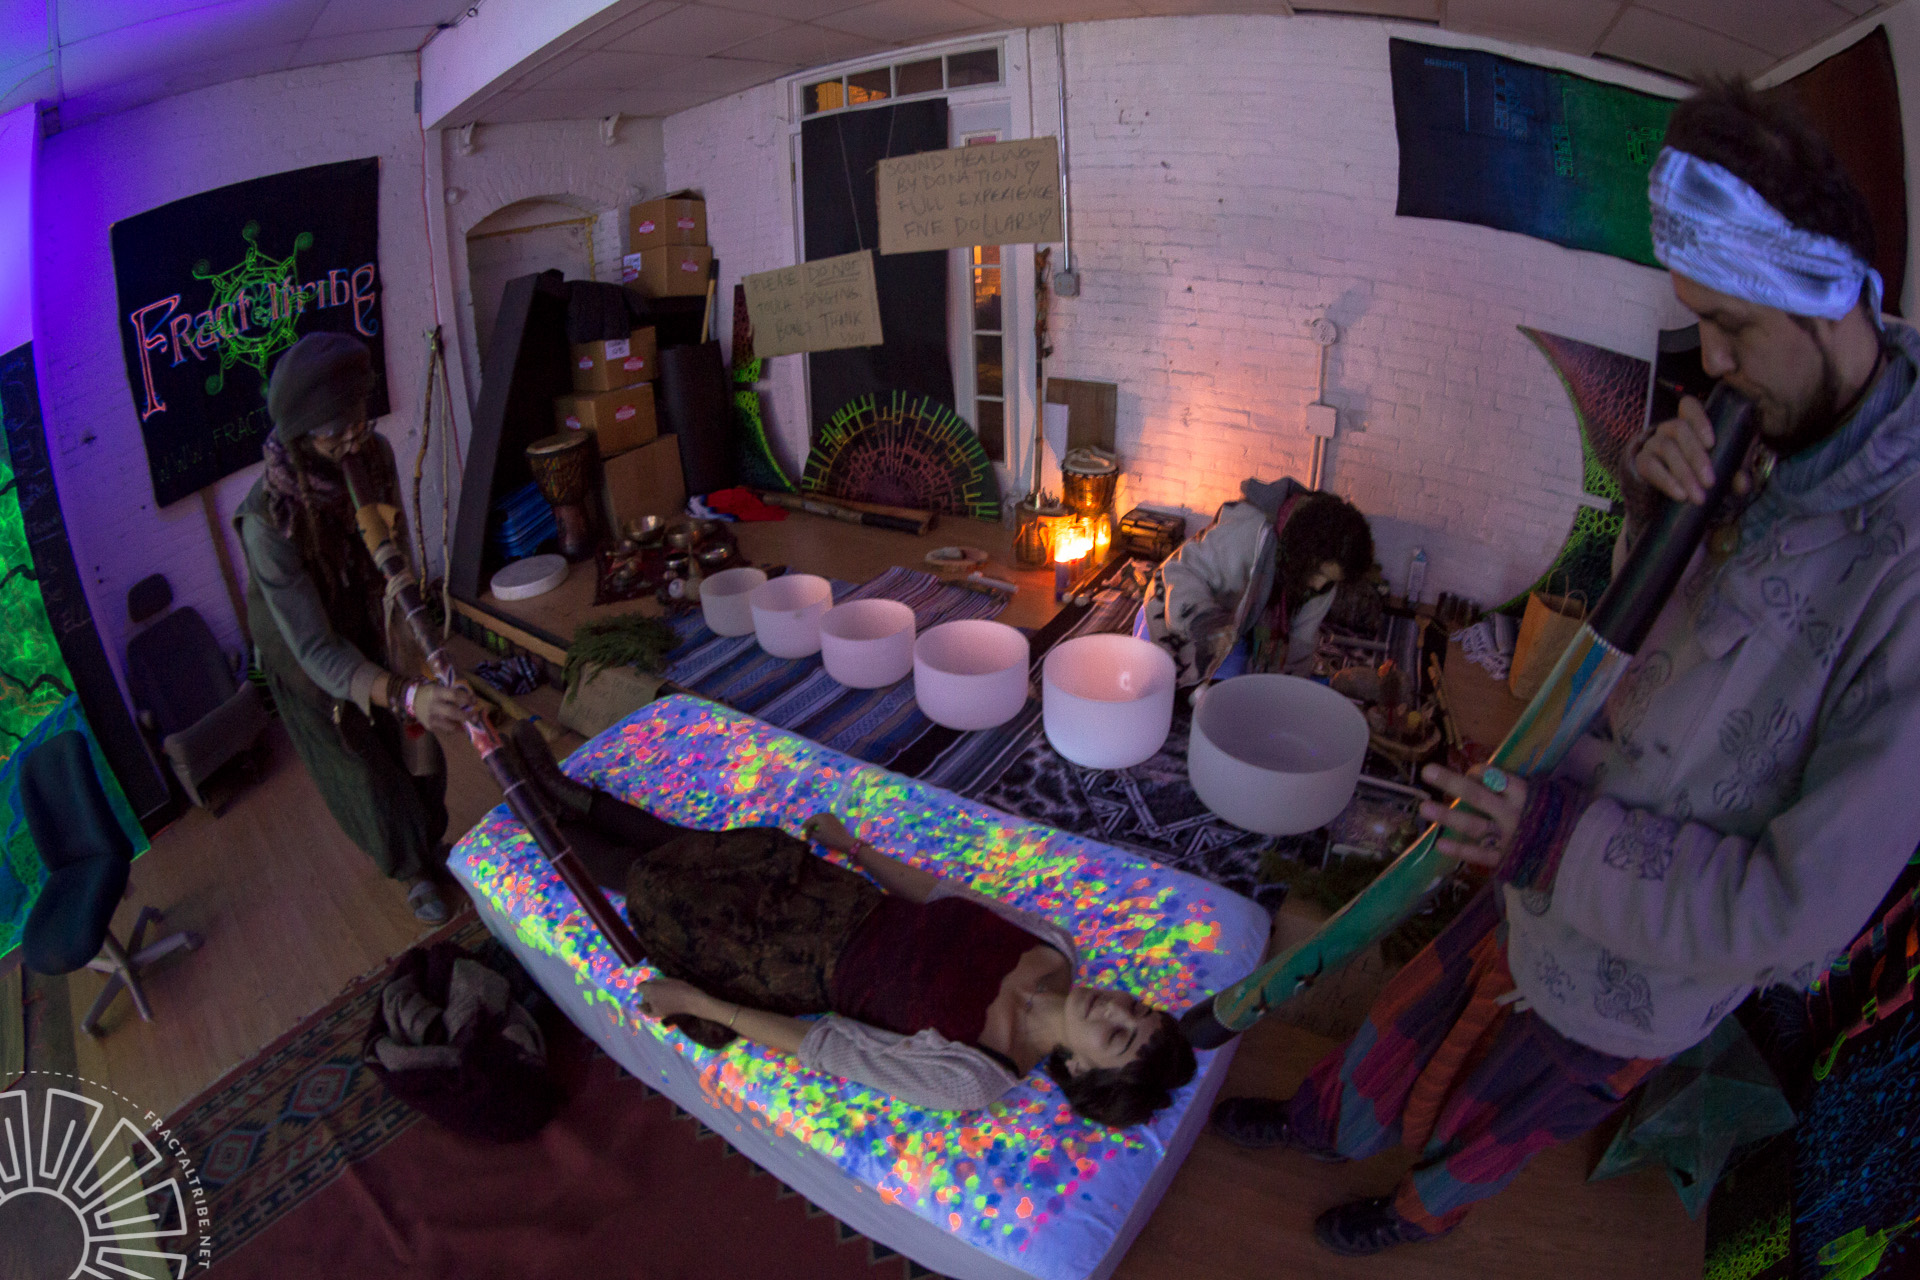 Sound Healing in the Chill Space @ Fractaltribe's Year of the Fractilian NYE party 12/31/14 in Worcester, MA, USA